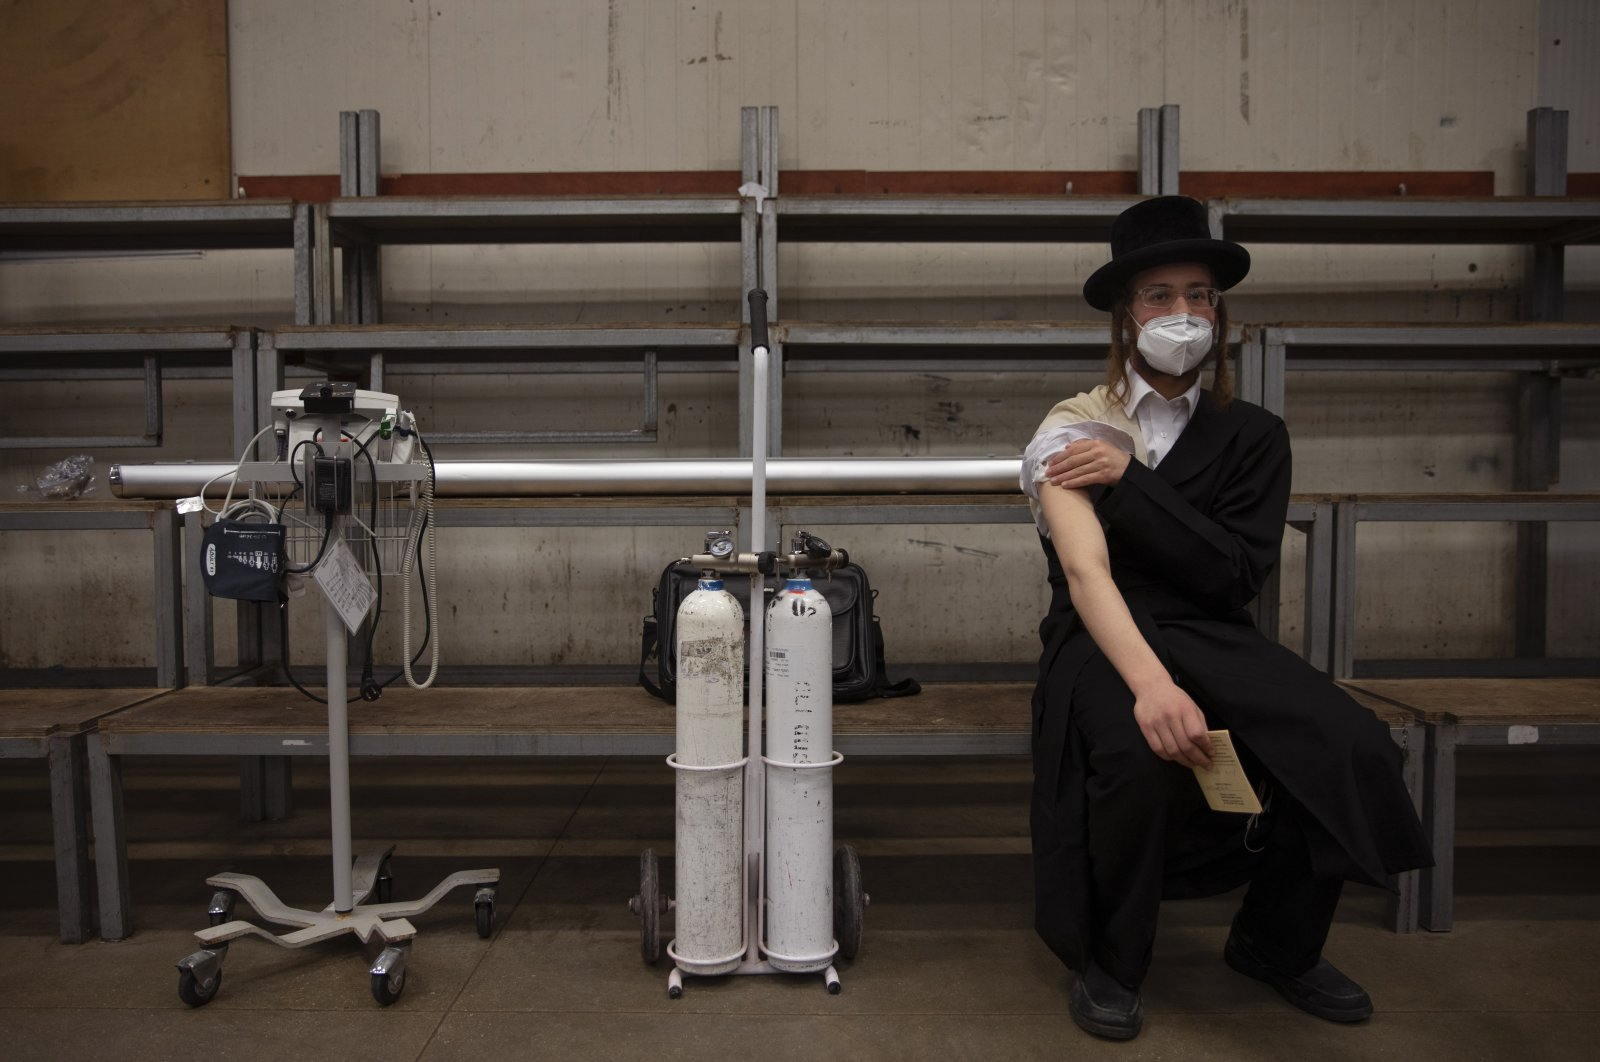 An ultra-Orthodox Jewish man rests after receiving his second dose of the Pfizer-BioNTech COVID-19 vaccine at a coronavirus vaccination center in Bnei Brak, Israel, March. 7, 2021. (AP Photo)